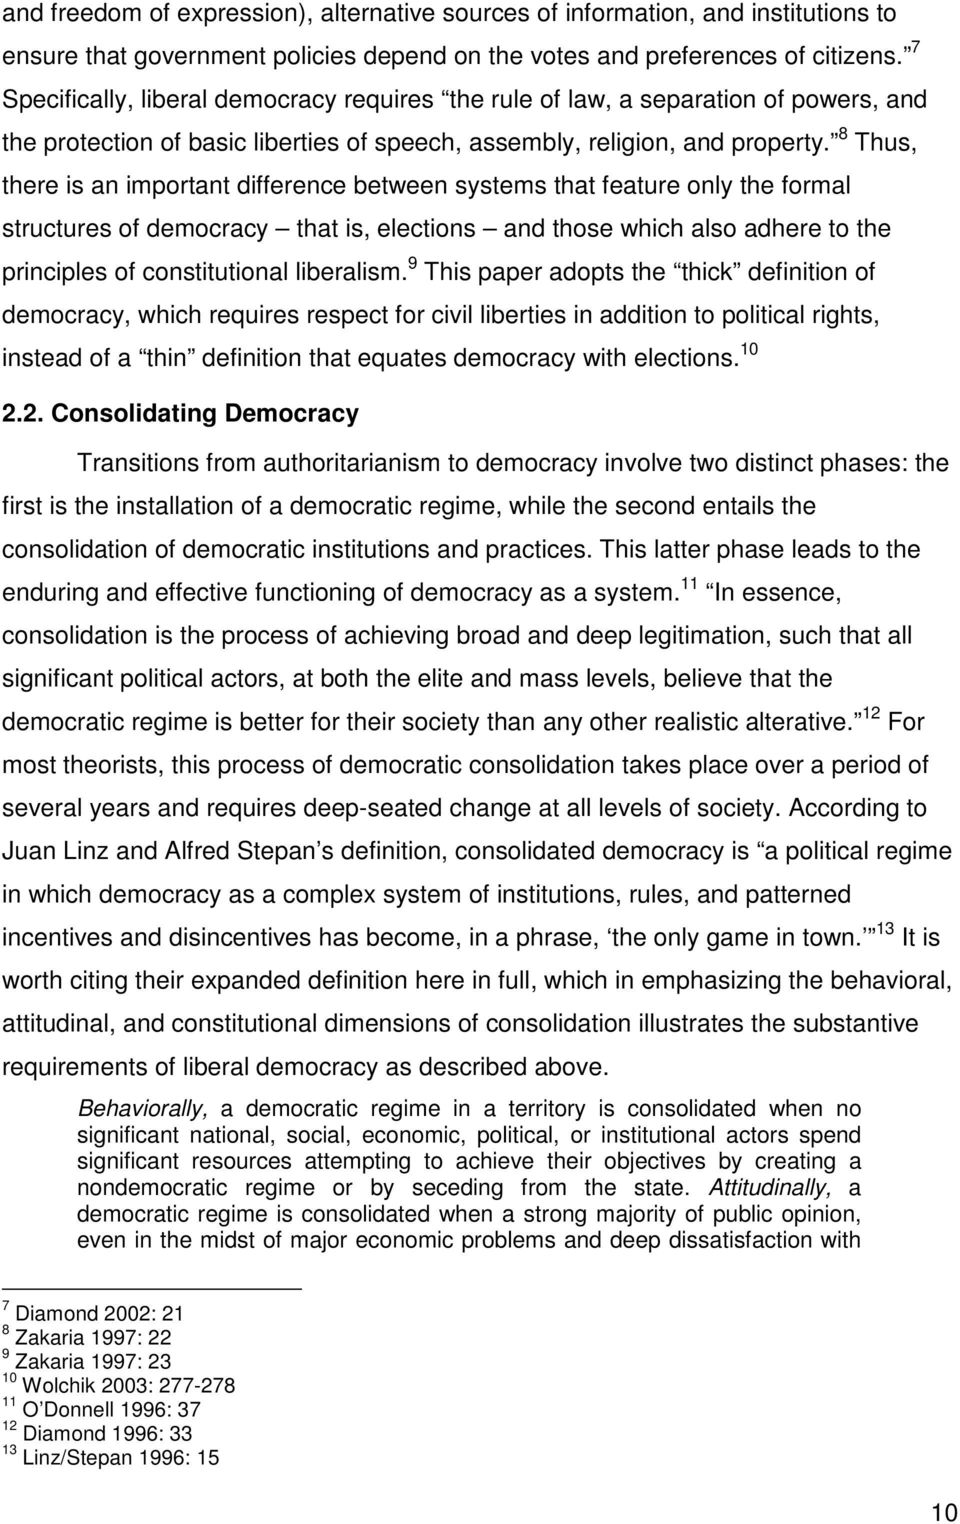 8 Thus, there is an important difference between systems that feature only the formal structures of democracy that is, elections and those which also adhere to the principles of constitutional